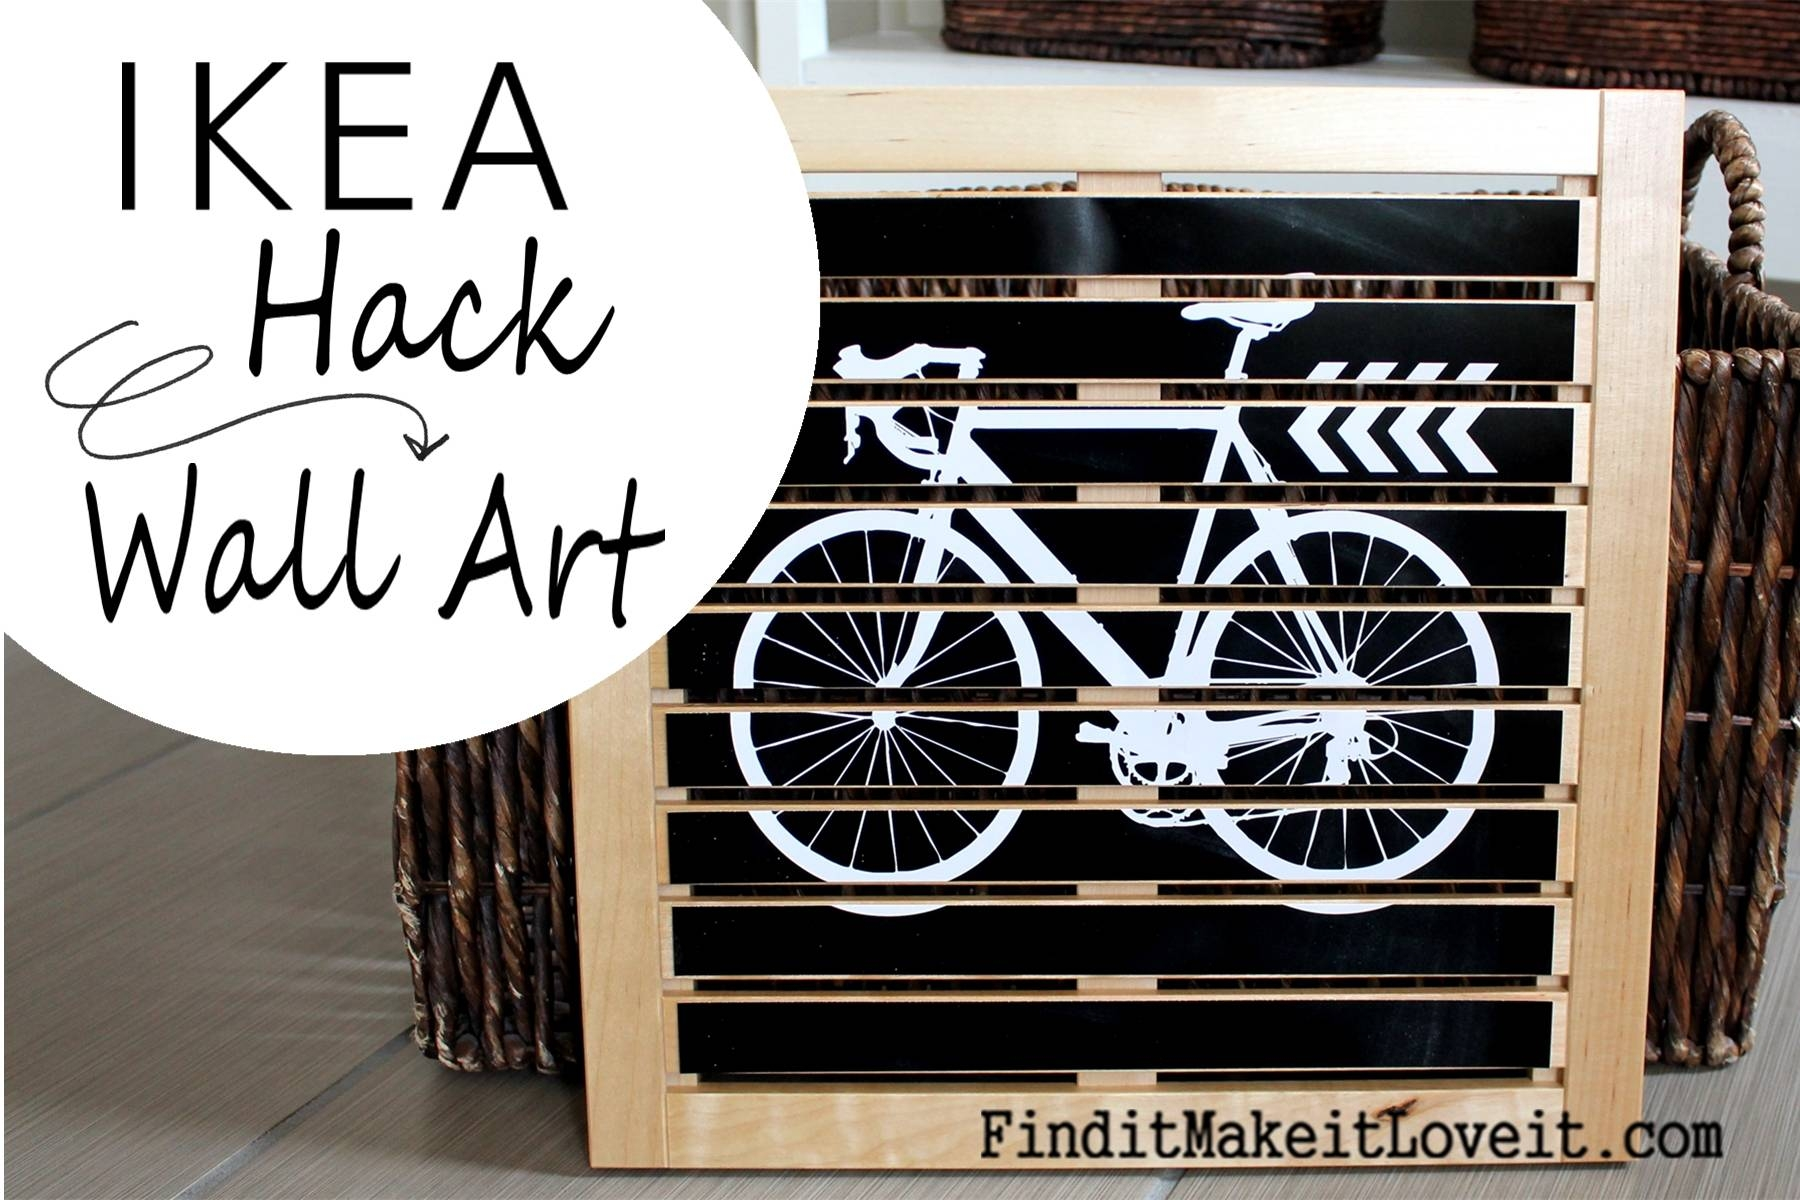 Diy Wall Art (Ikea Hack) – Find It, Make It, Love It Within Most Recent Ikea Metal Wall Art (View 4 of 20)